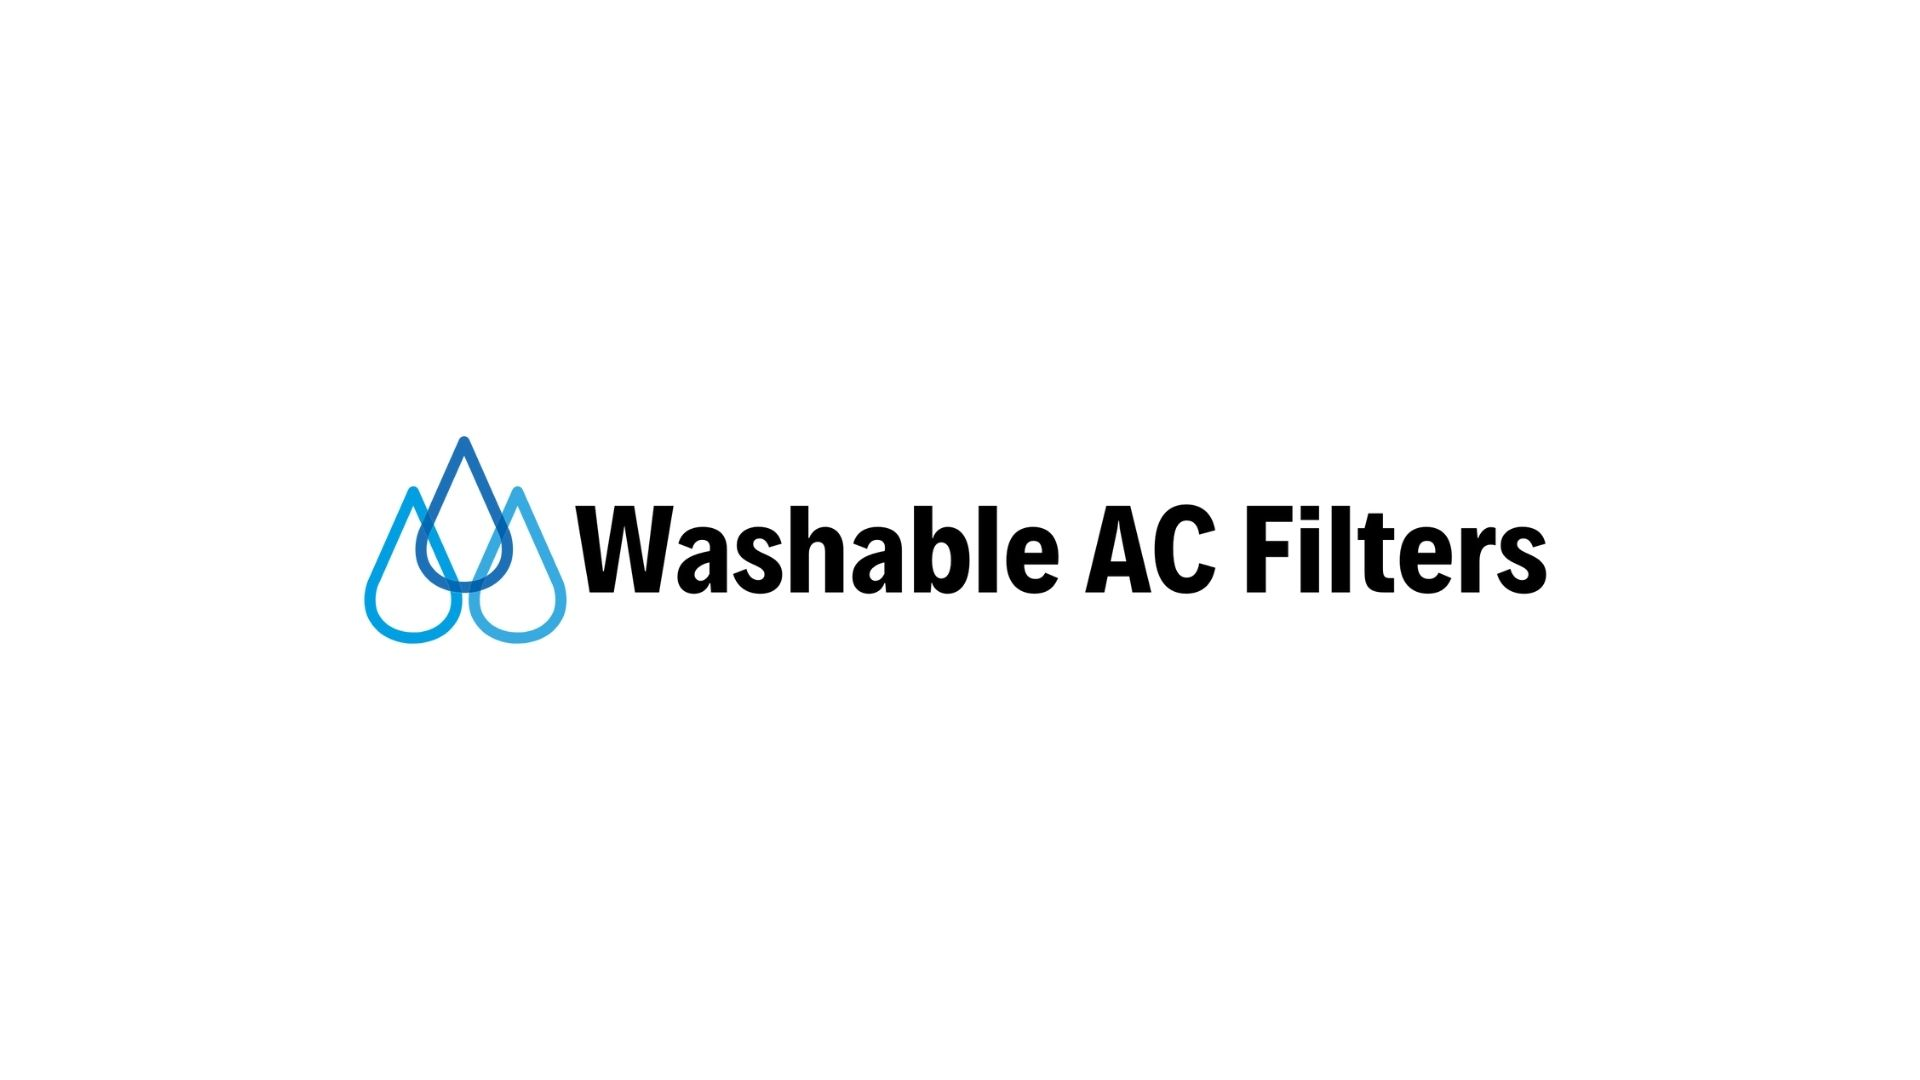 Washable AC Filters